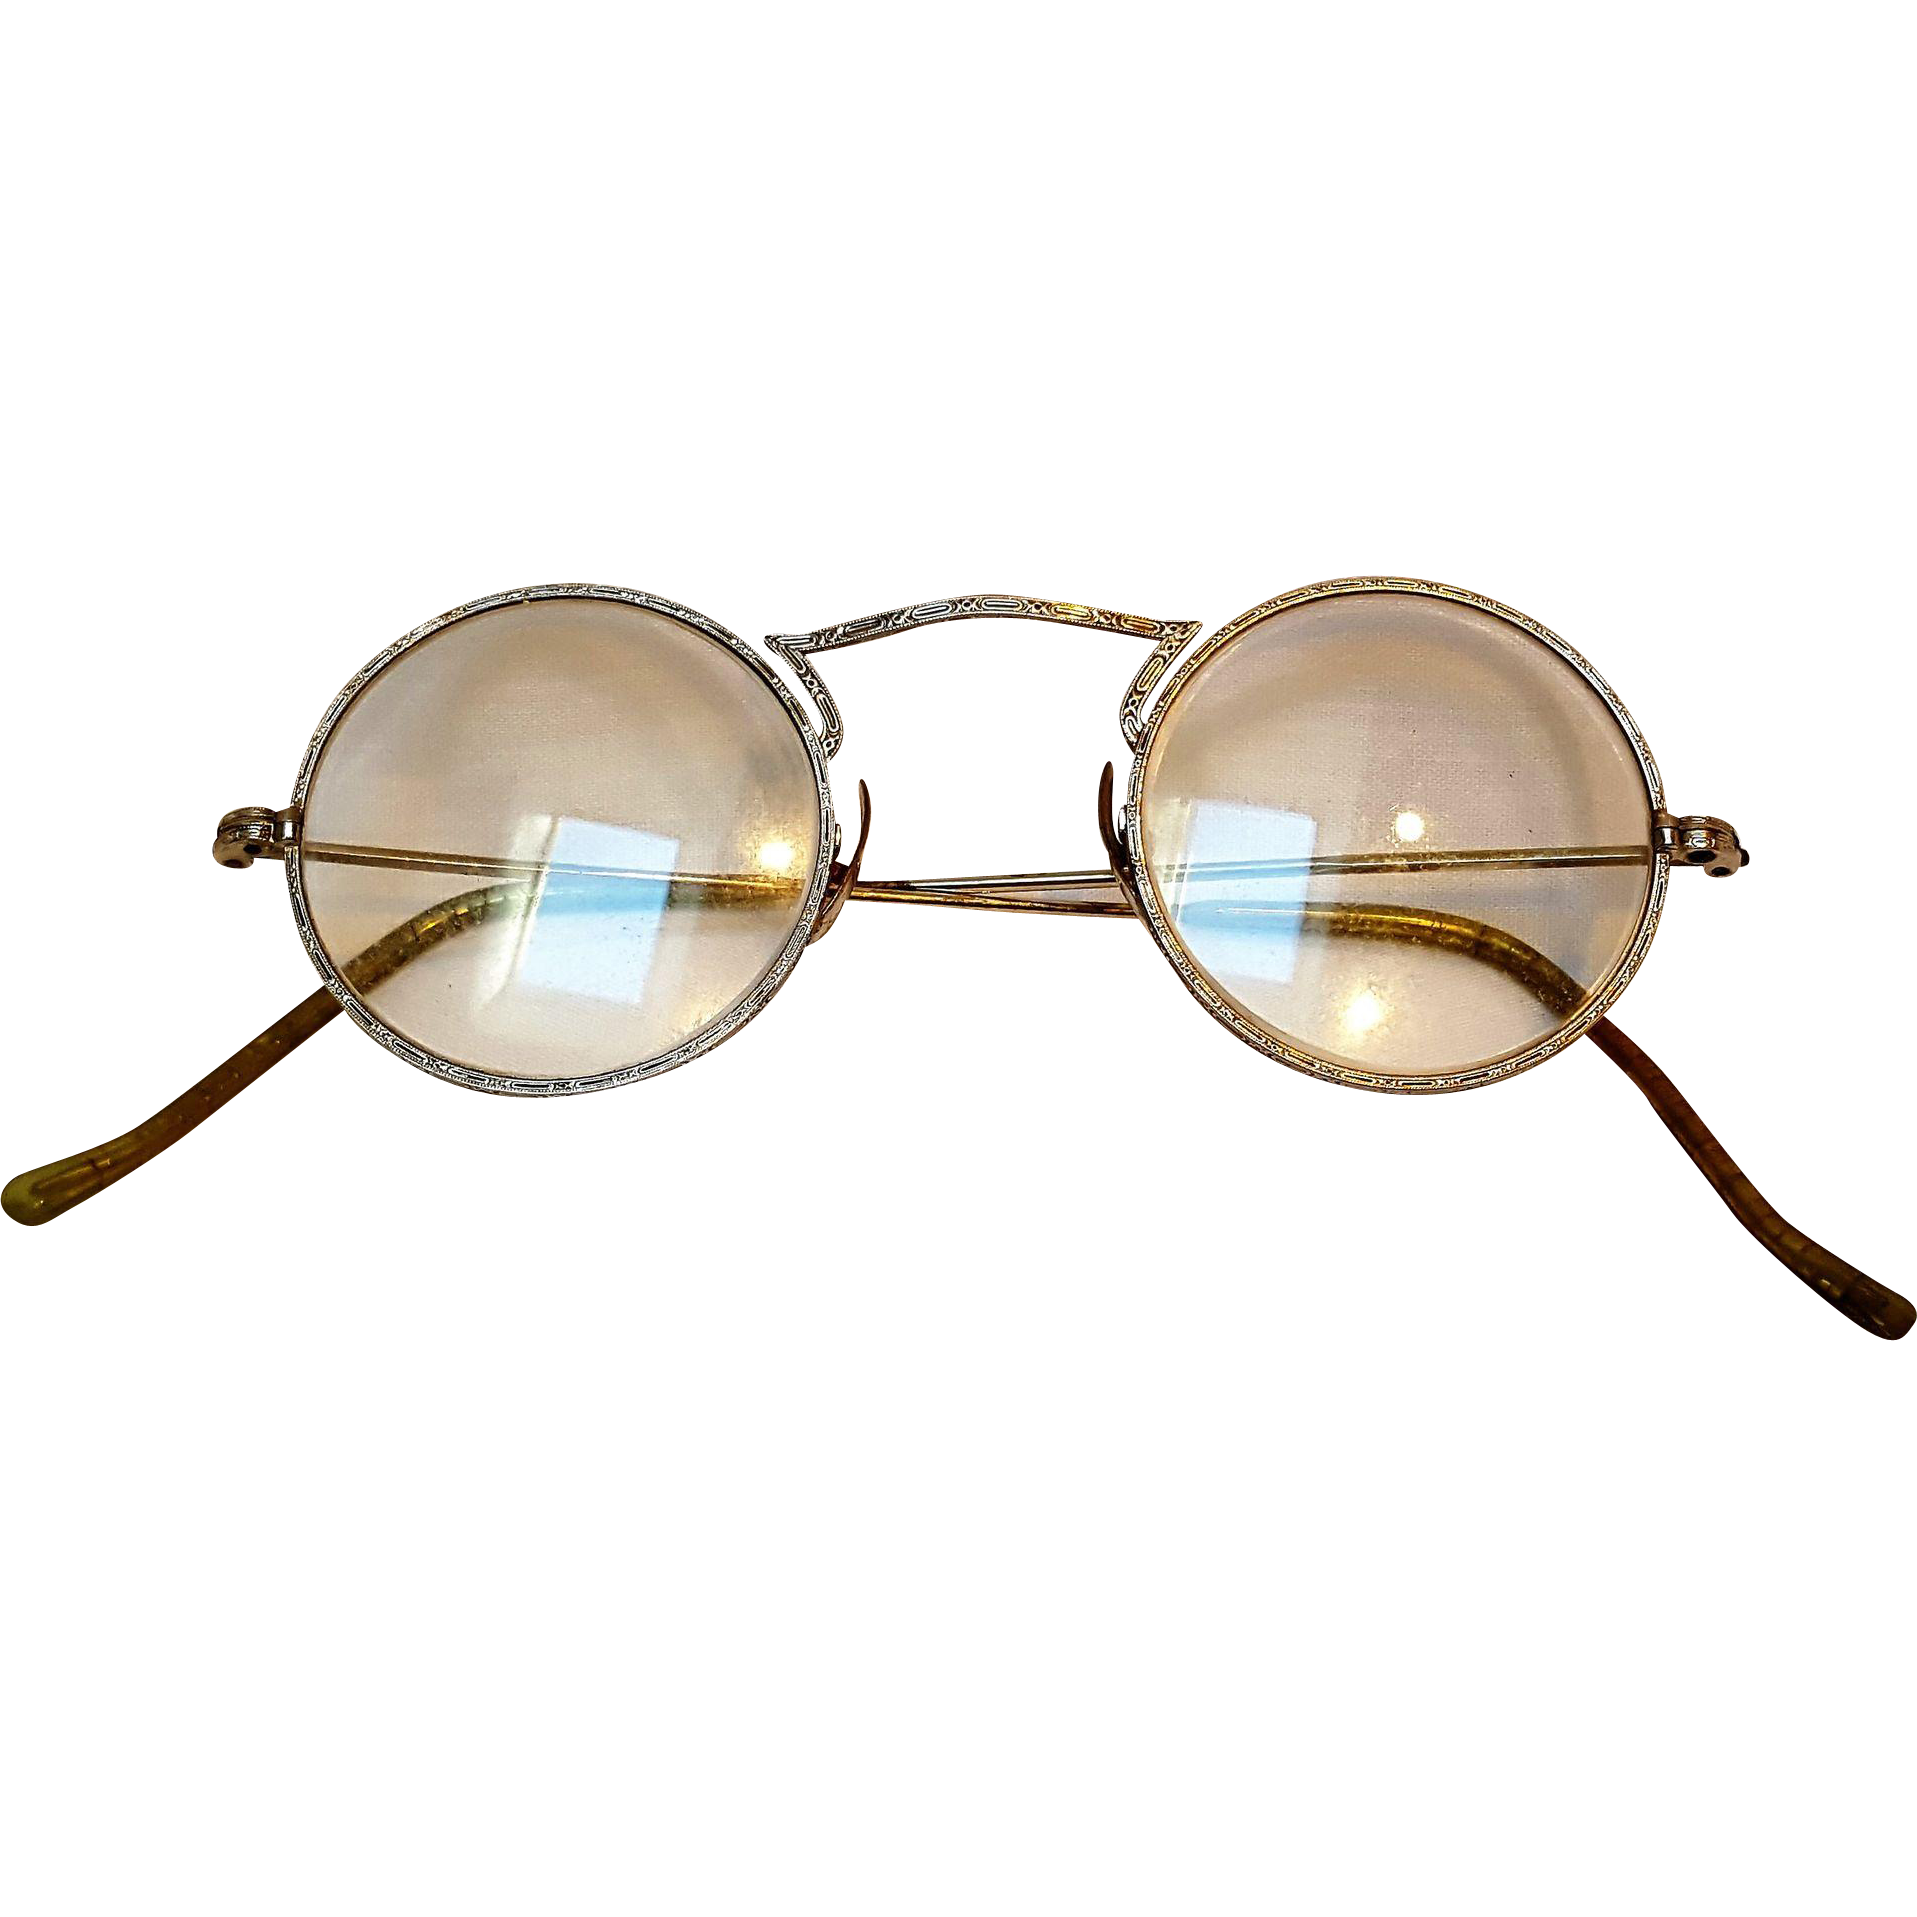 Embossed eye glasses 10K white gold pads